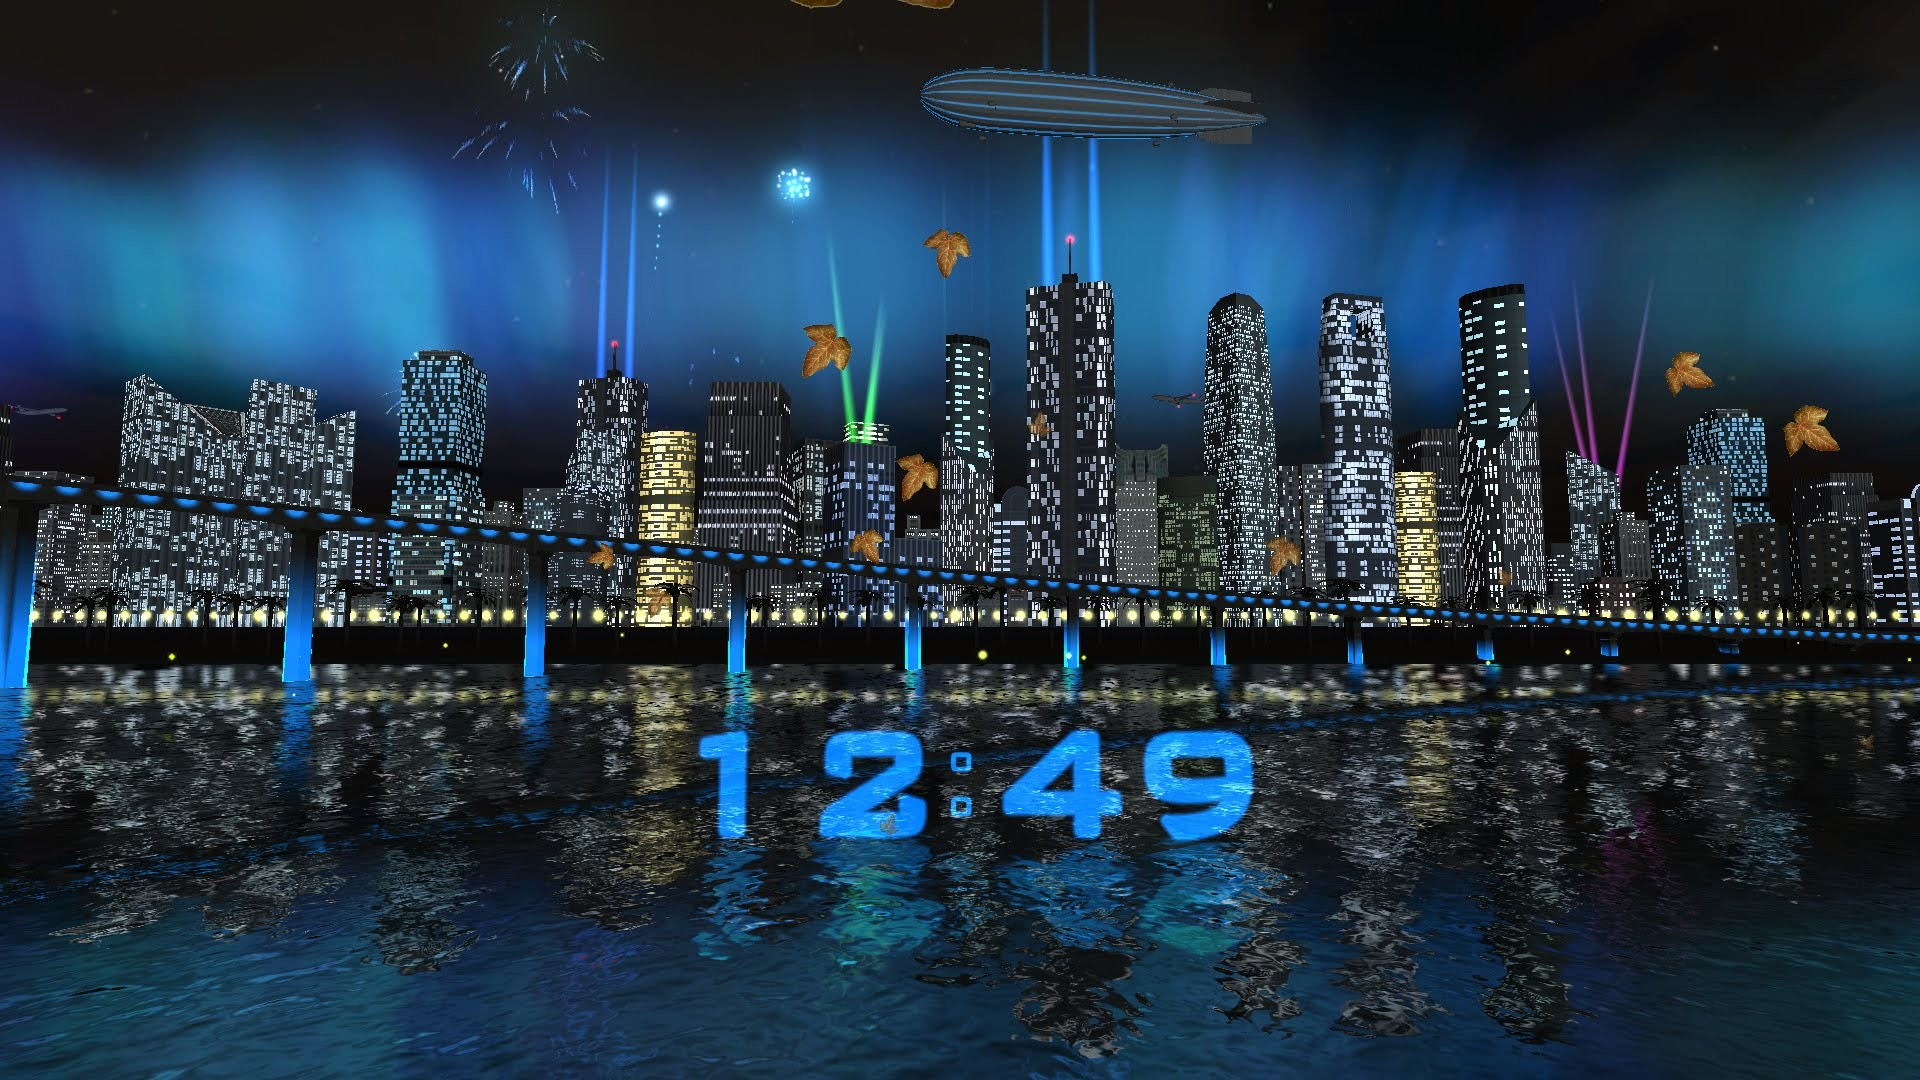 1920x1080 Day Night City Fireworks LWP (v.1.0.3) - Live wallpaper by Exacron Full  HD(1080p) - YouTube